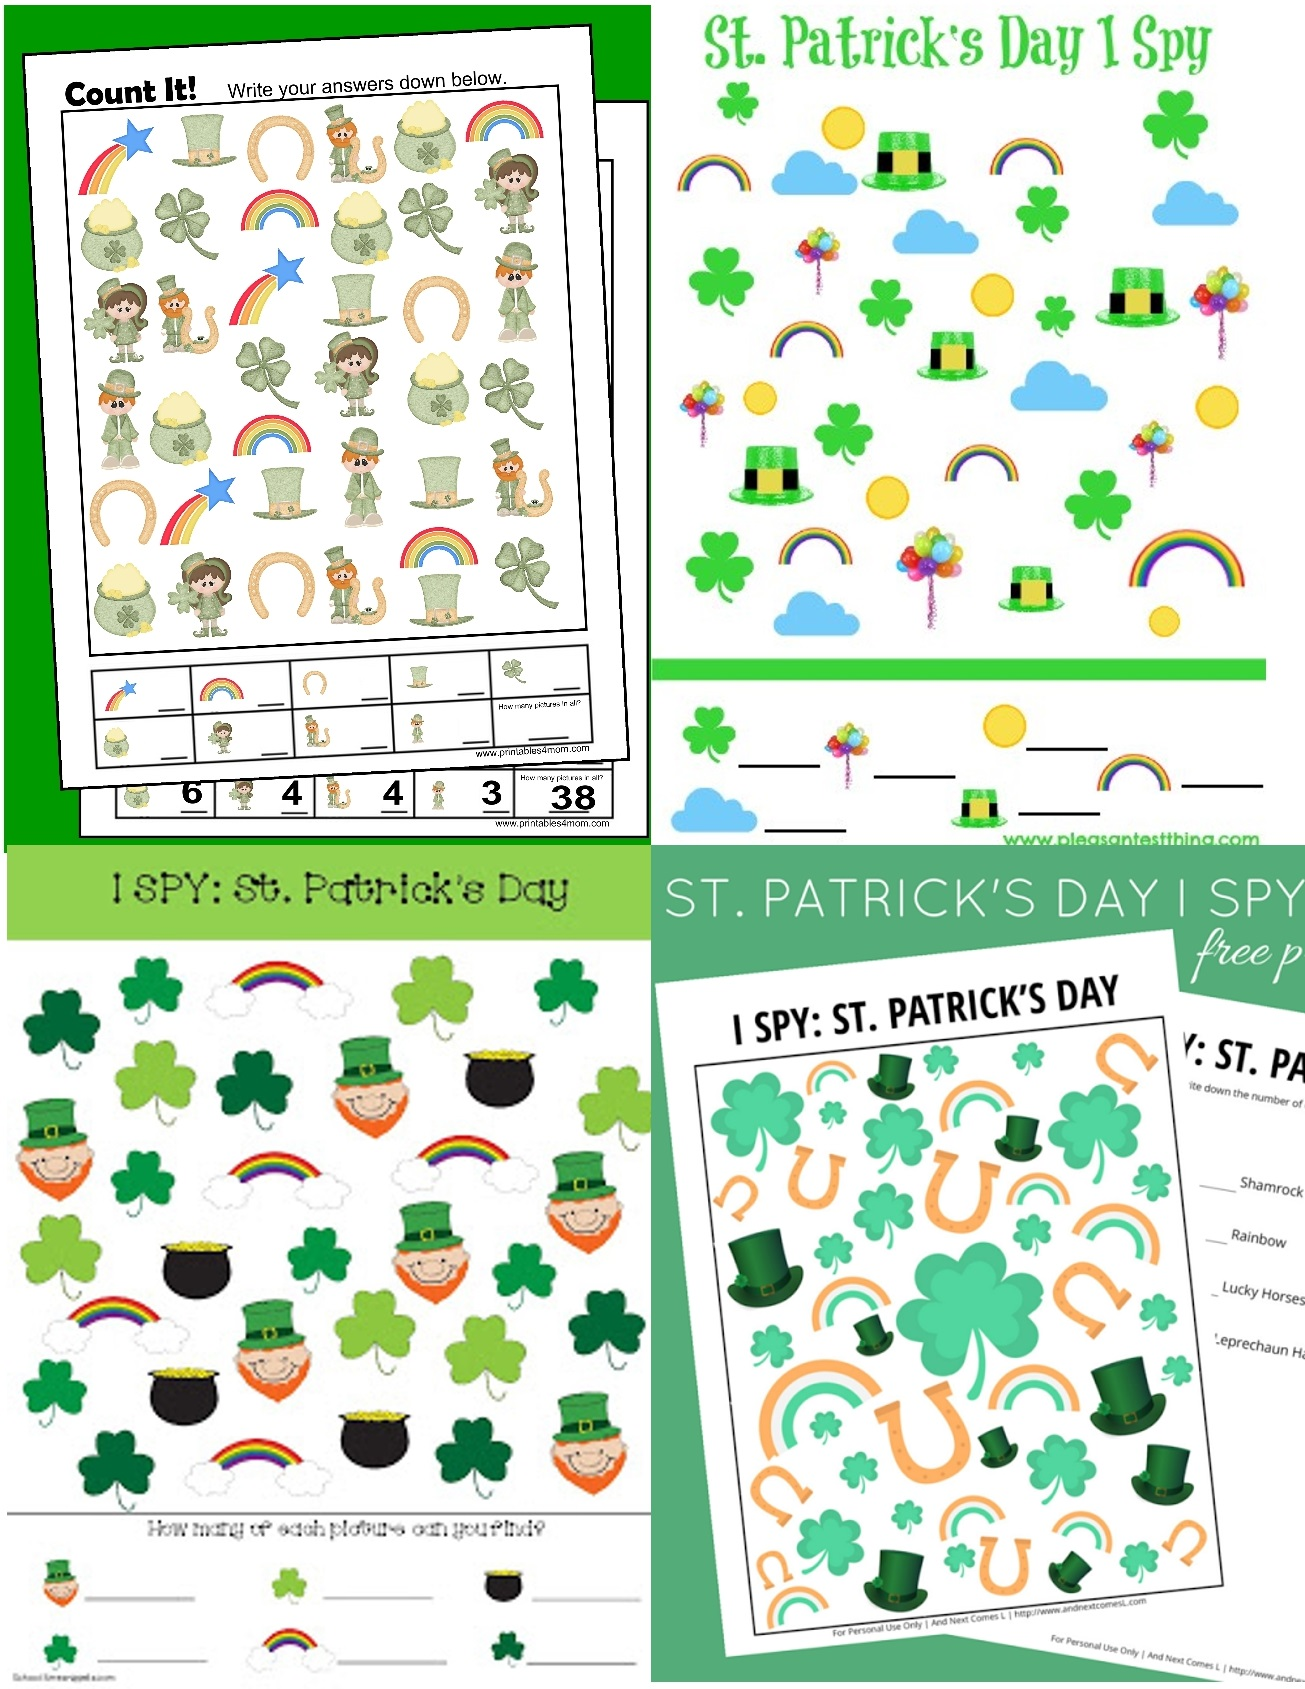 St. Patrick's Day Game Ispy Printable worksheets counting activity for kids